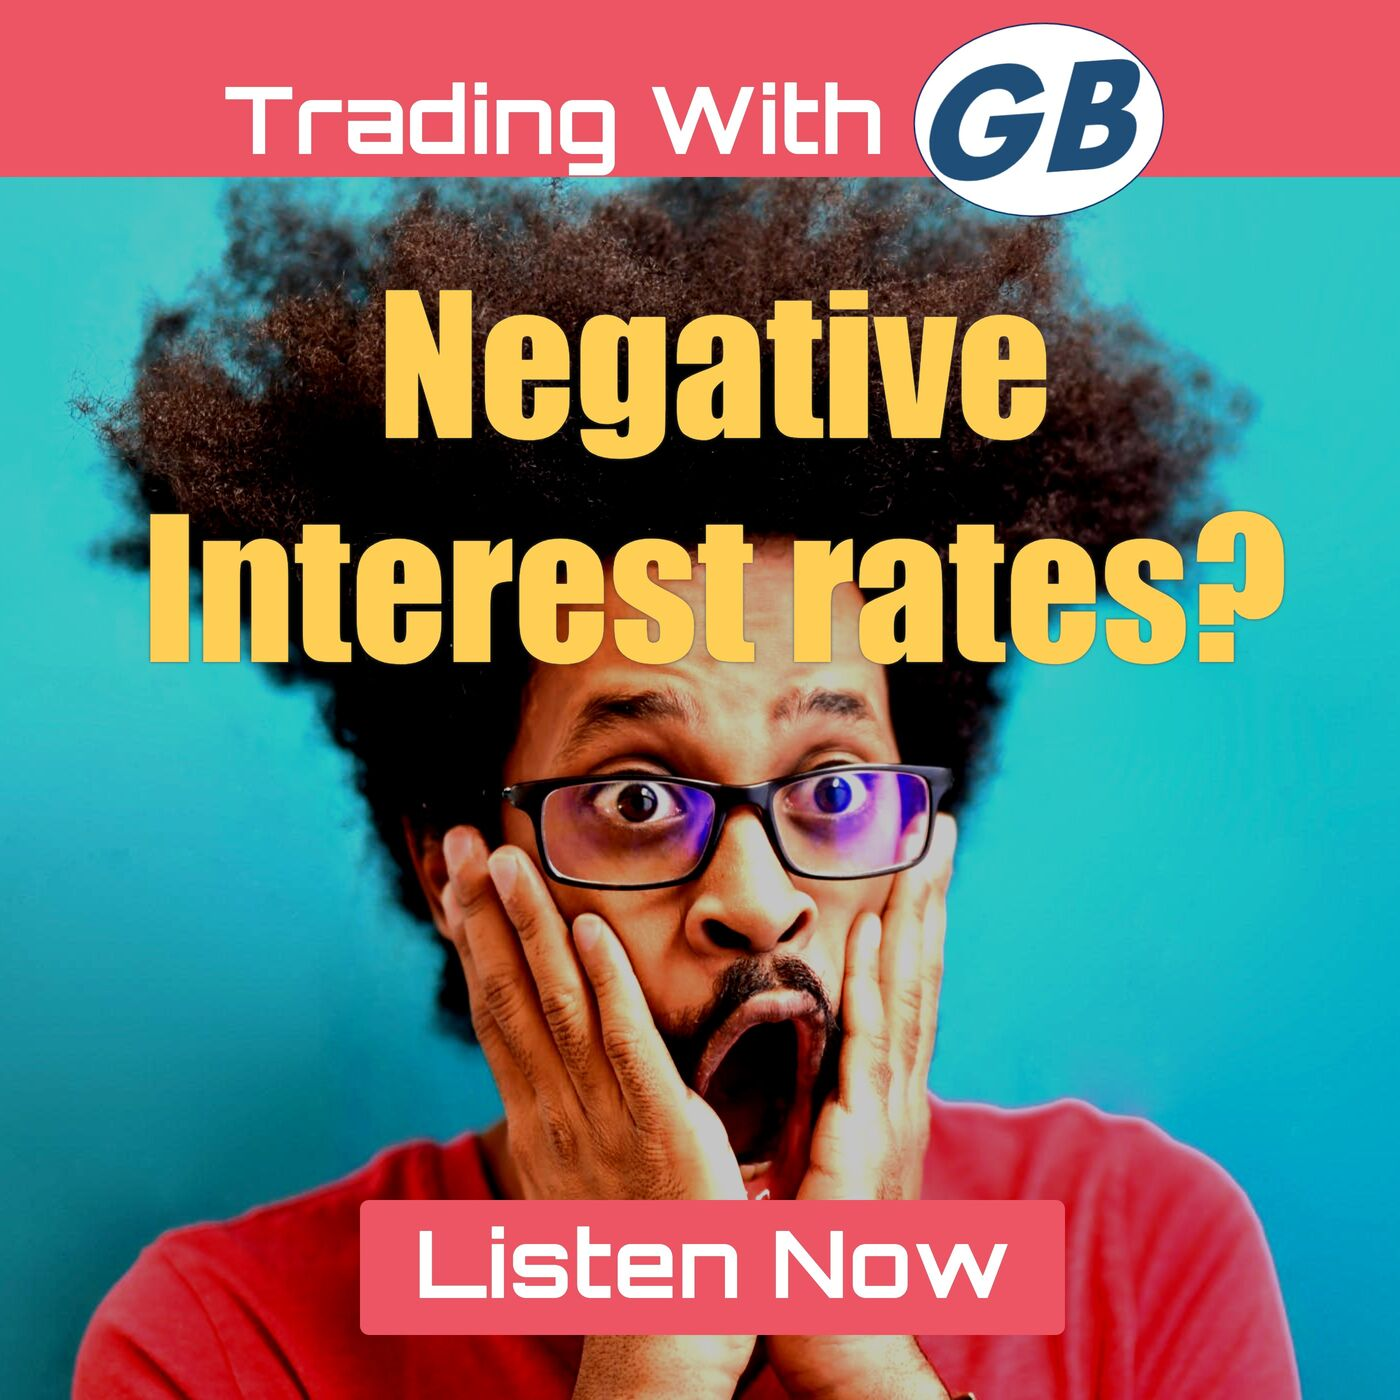 All About Negative Interest Rates